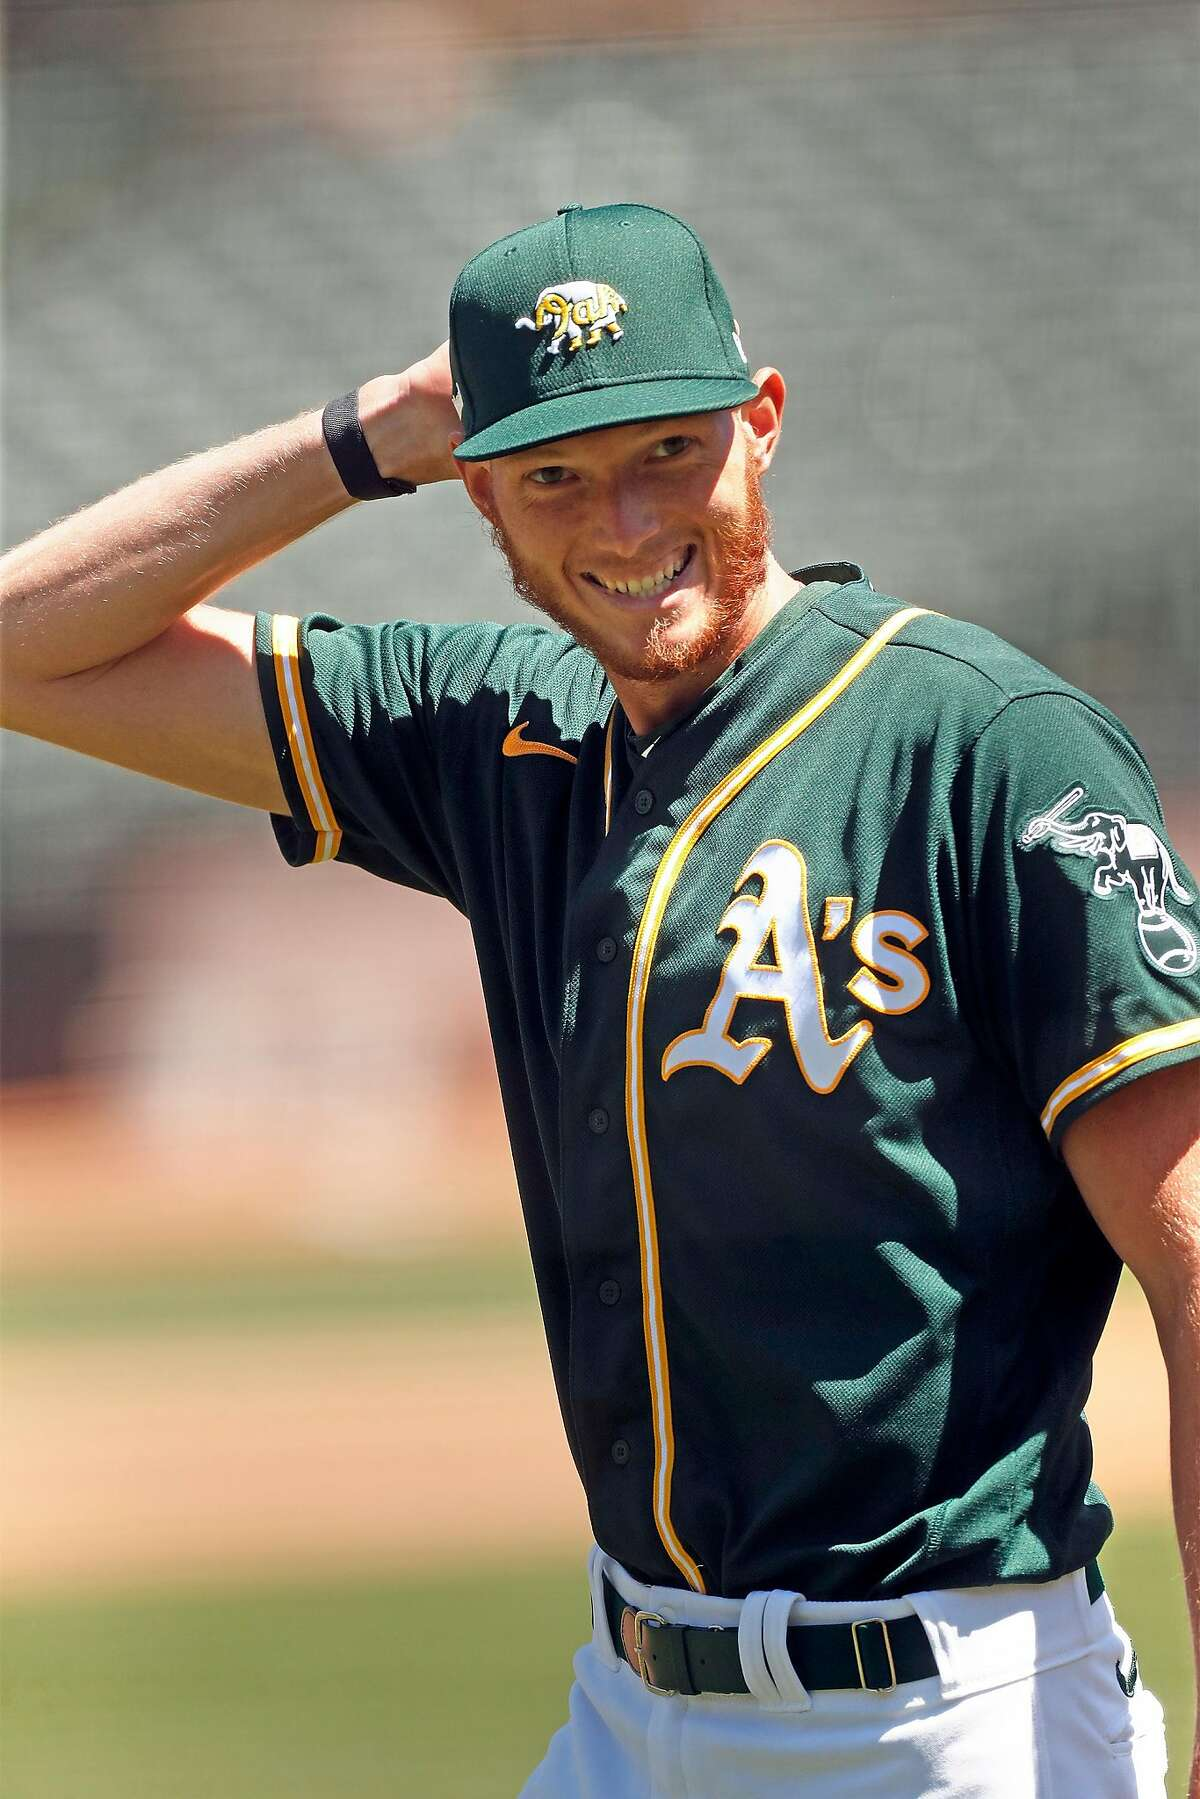 Oakland A's A.J. Puk during practice at Oakland Coliseum in Oakland, Calif., on Sunday, July 5, 2020.